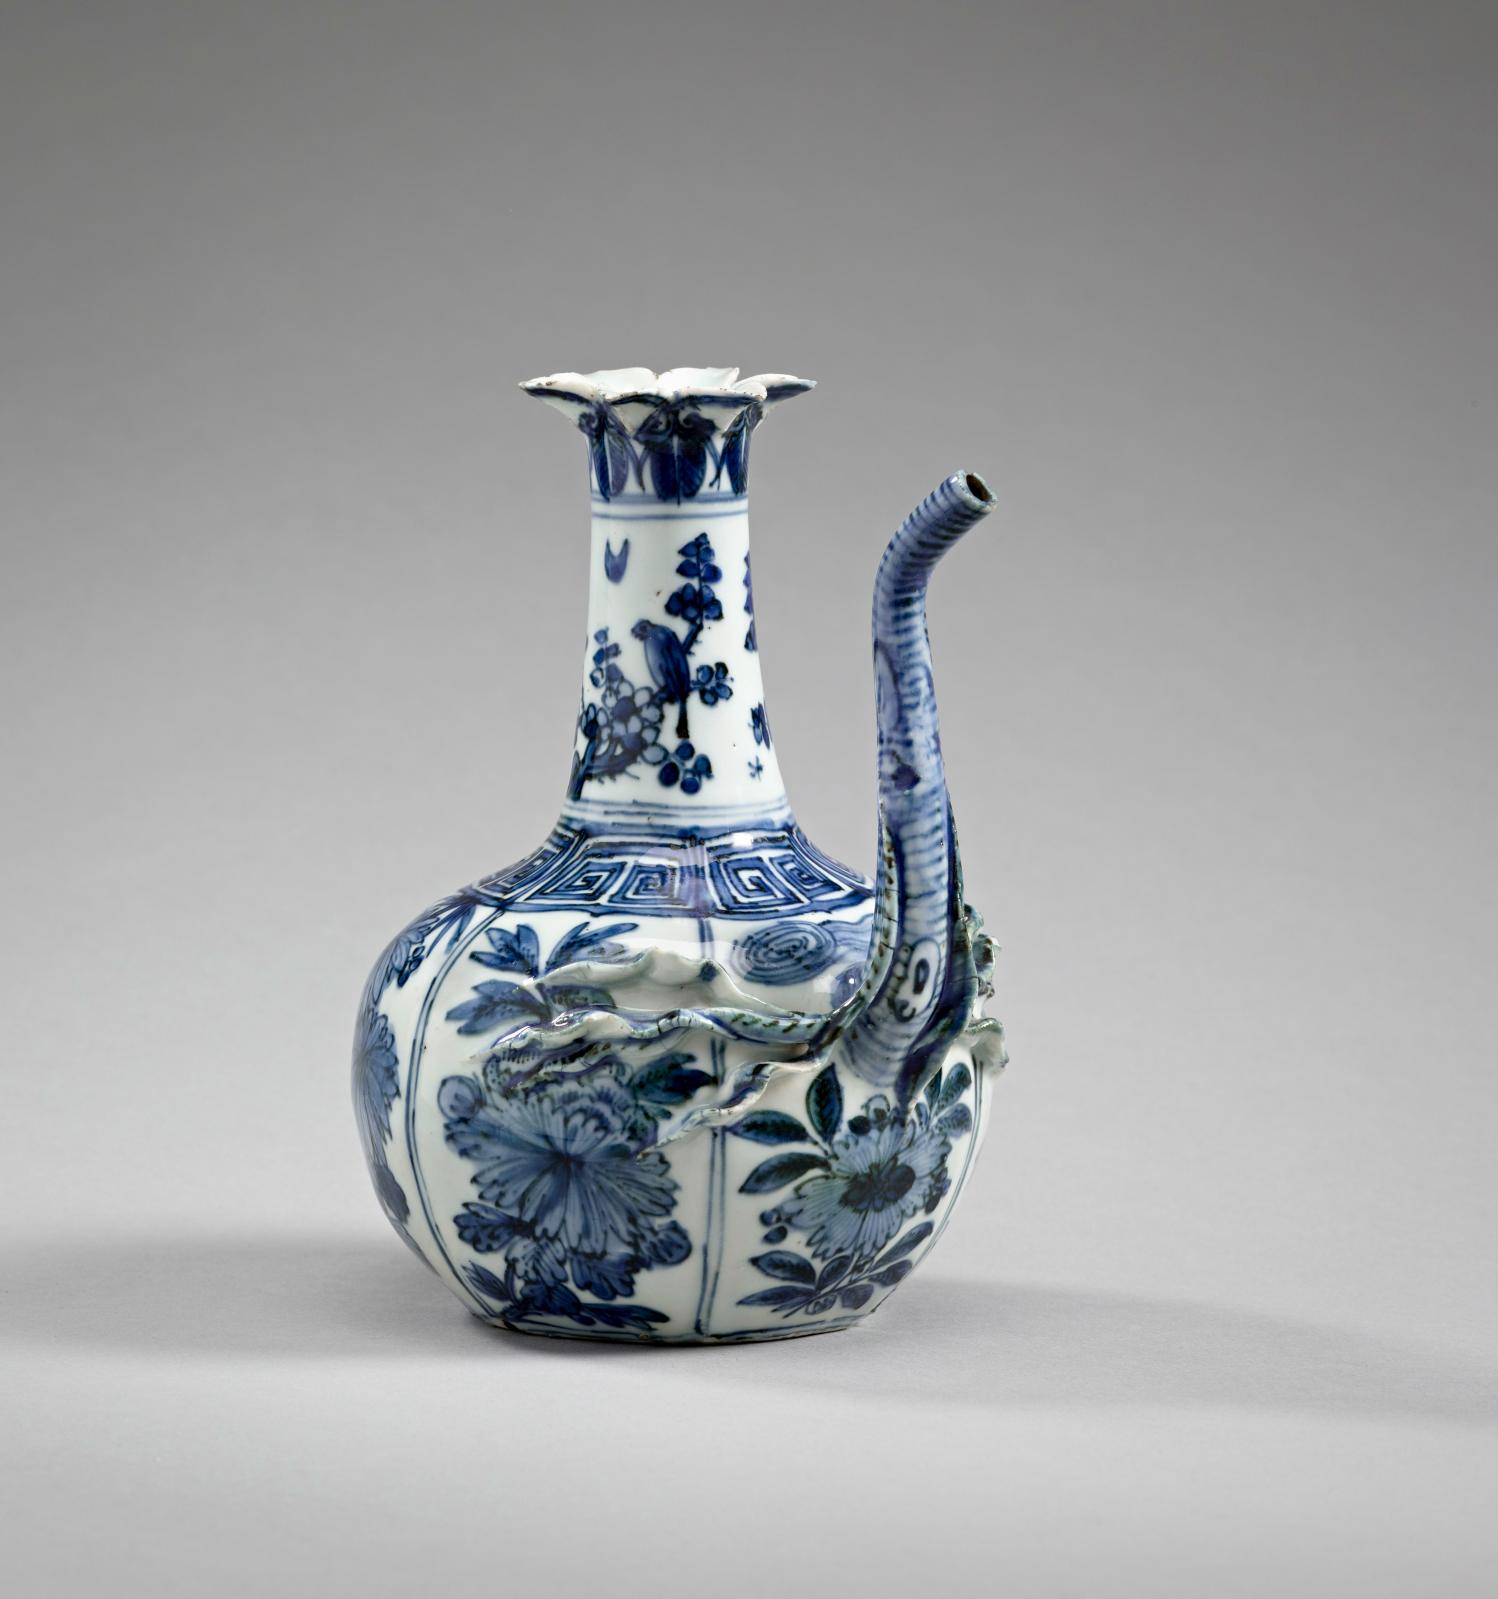 Pouring vessel (kendi) with bird and flower decoration, late 16th/early 17th century, provenance: Jingdezhen (Jiangxi province), Ming dynasty, reign o